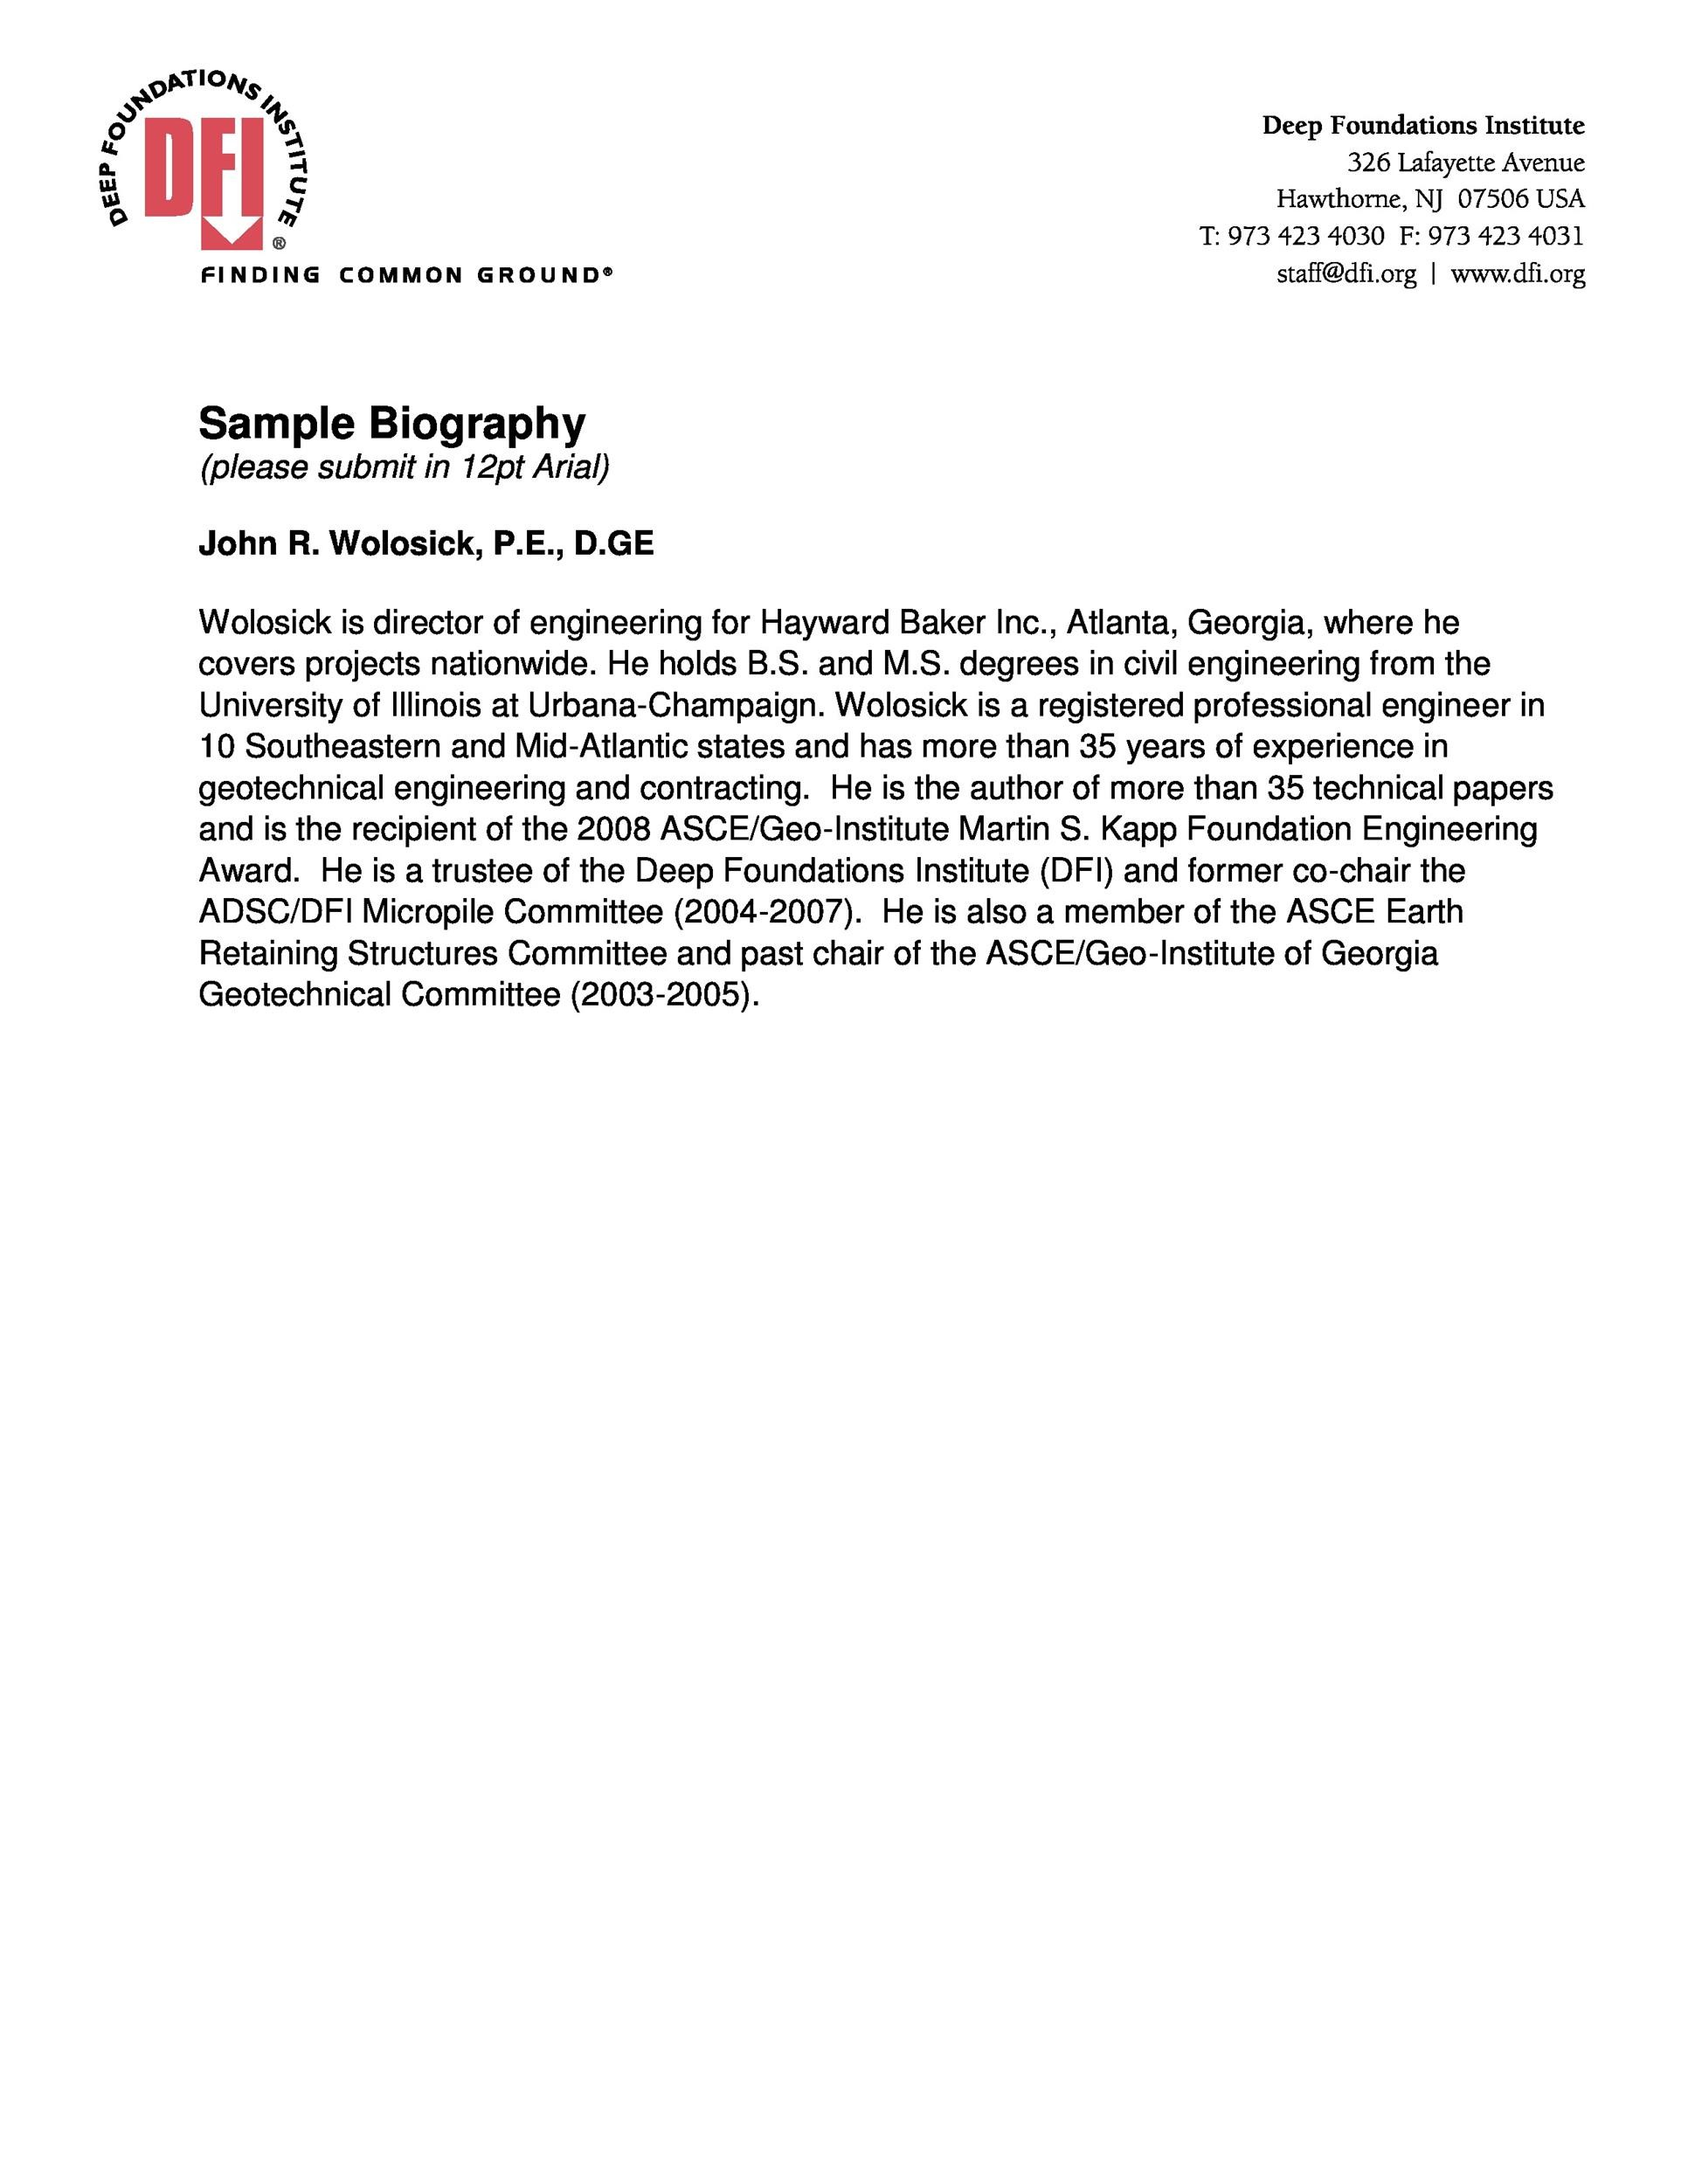 How to Write a Biography Resume